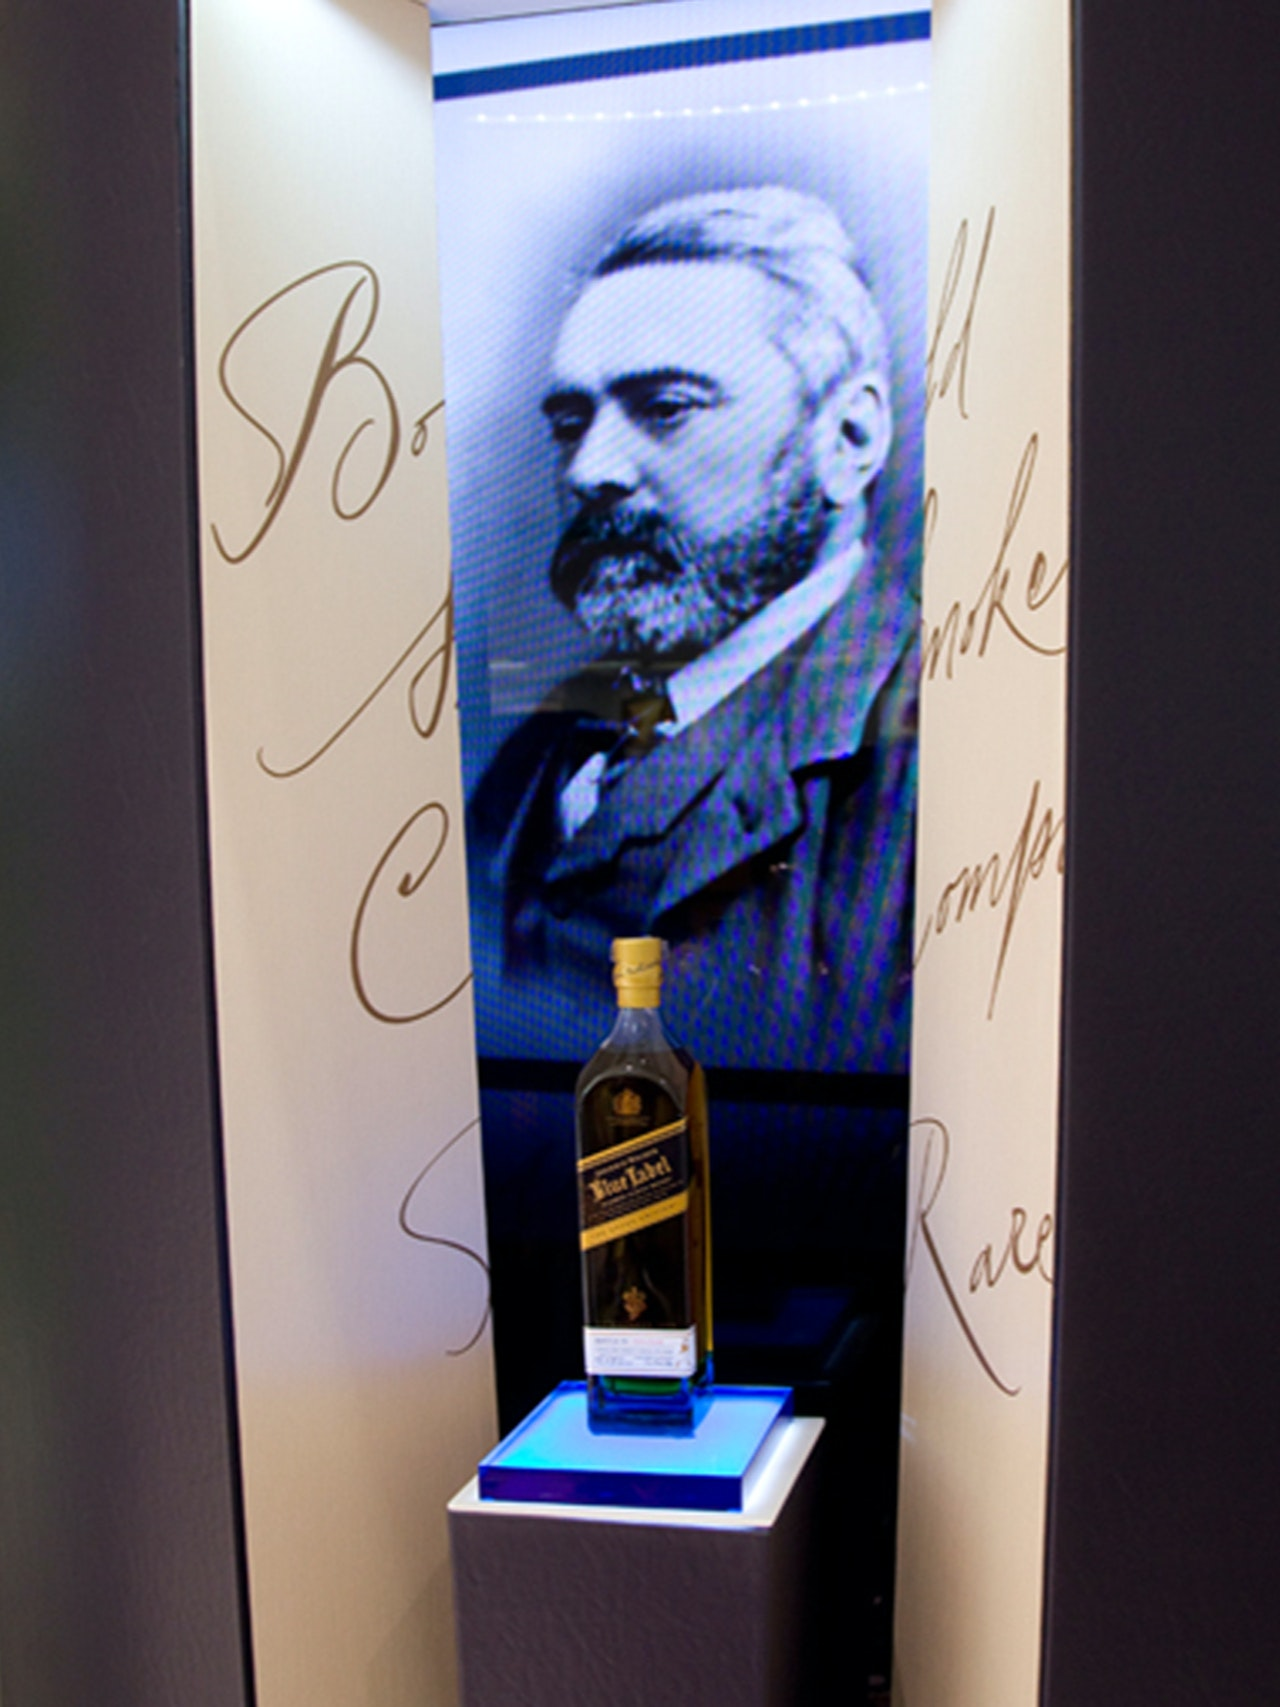 JOHNNIE WALKER BLUE LABEL COLUMN